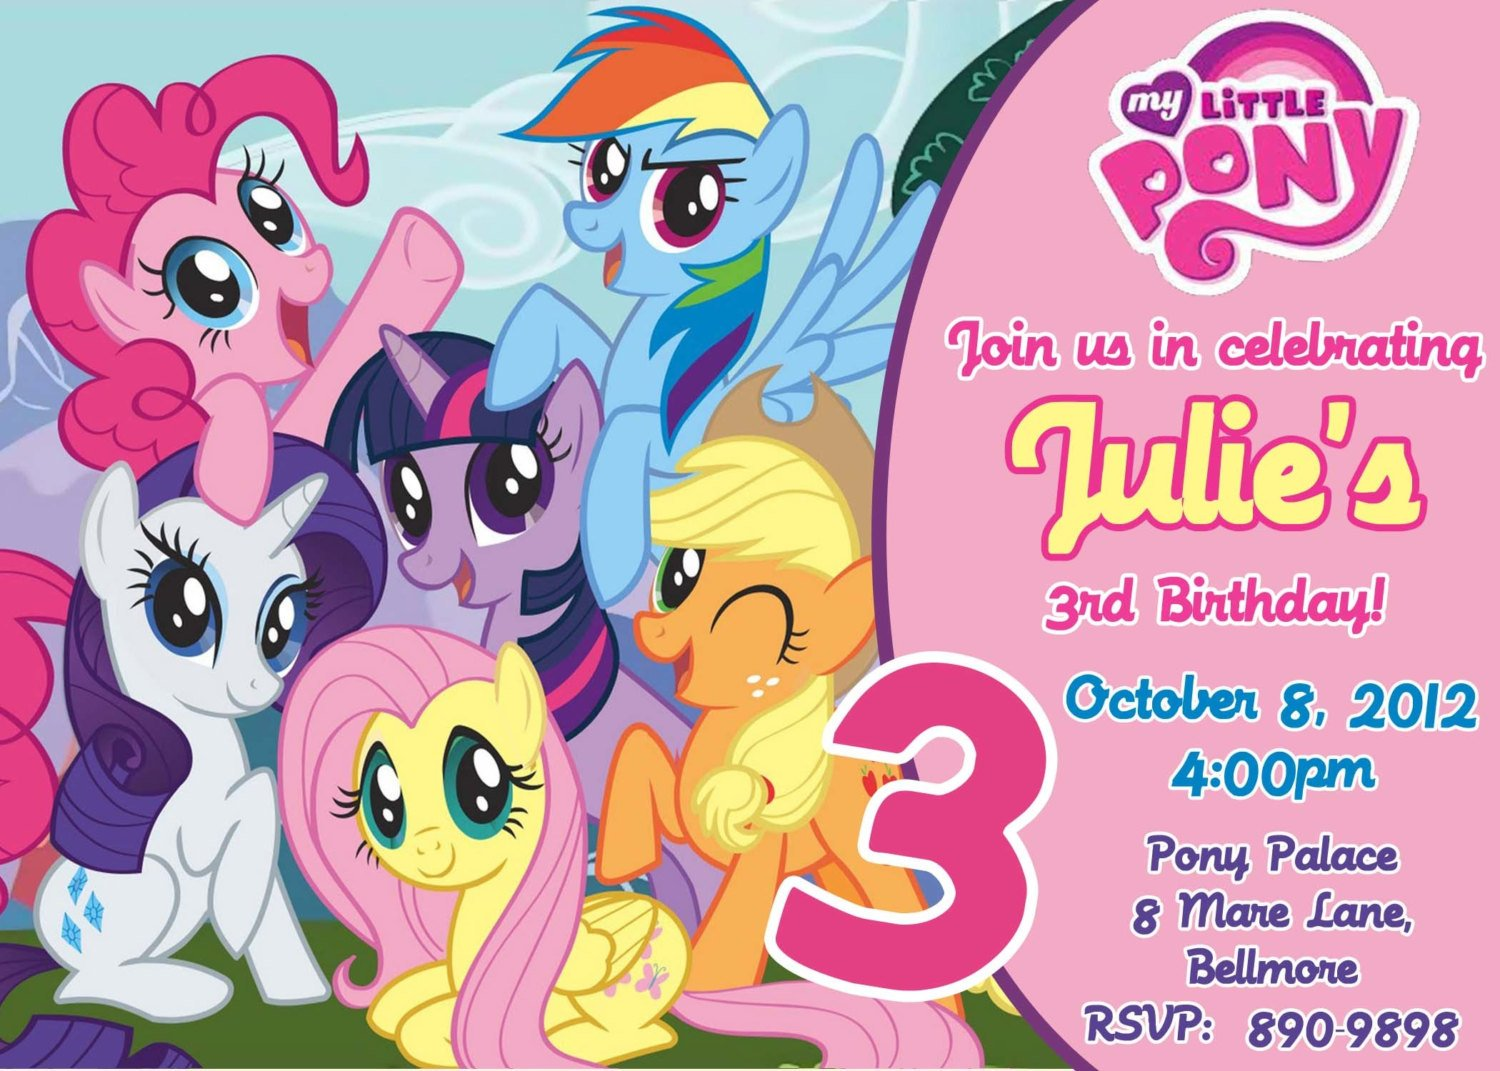 graphic about My Little Pony Printable Birthday Cards named My Very little Pony Birthday Get together Invites Totally free Printable